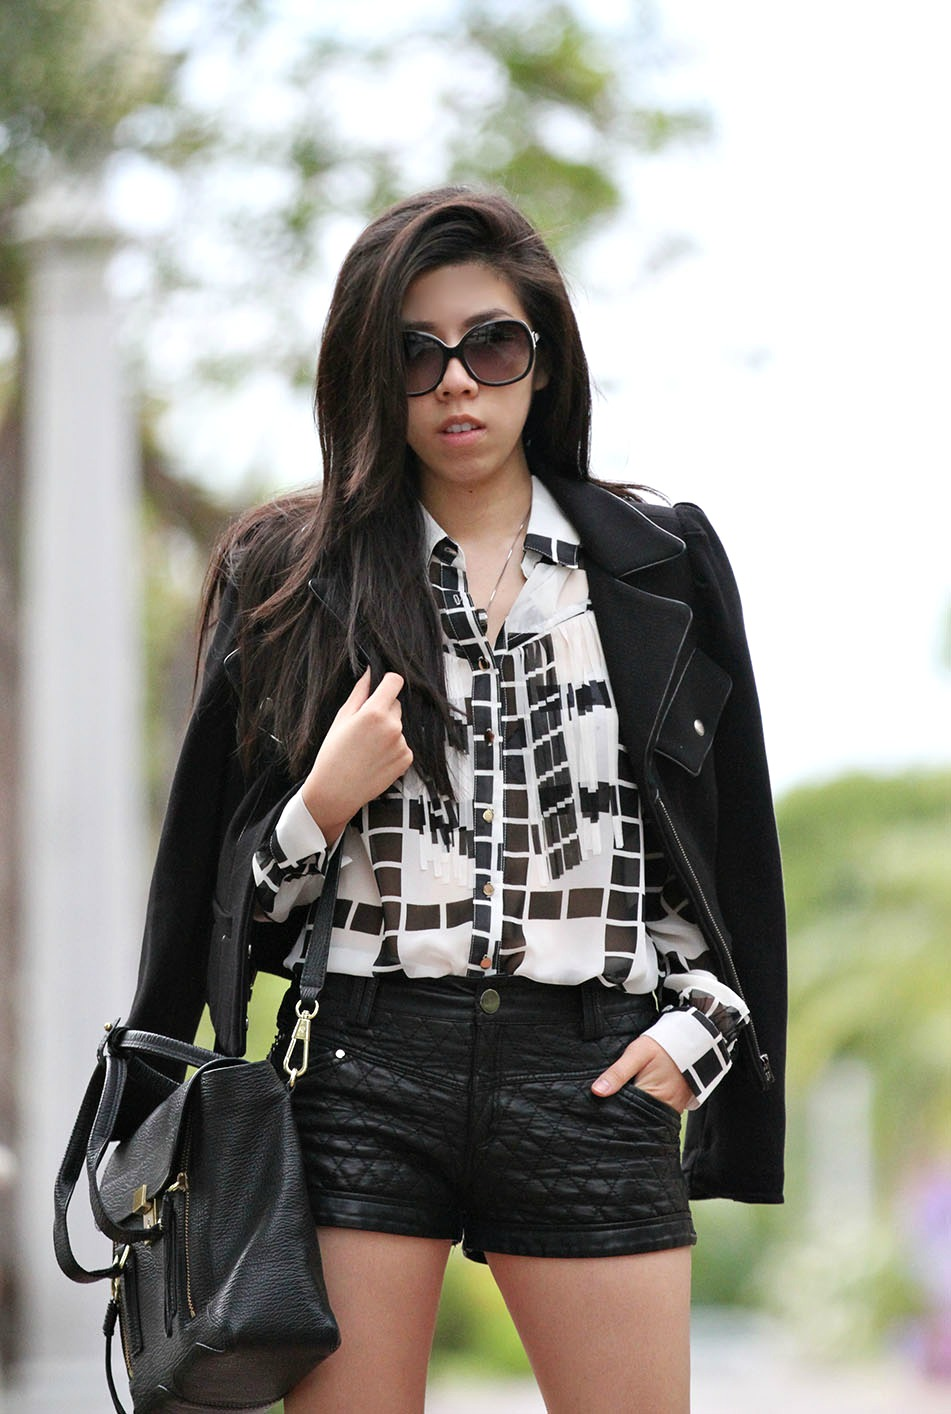 Adrienne Nguyen_Invictus_Casual black and white outfit_california fashion blogger